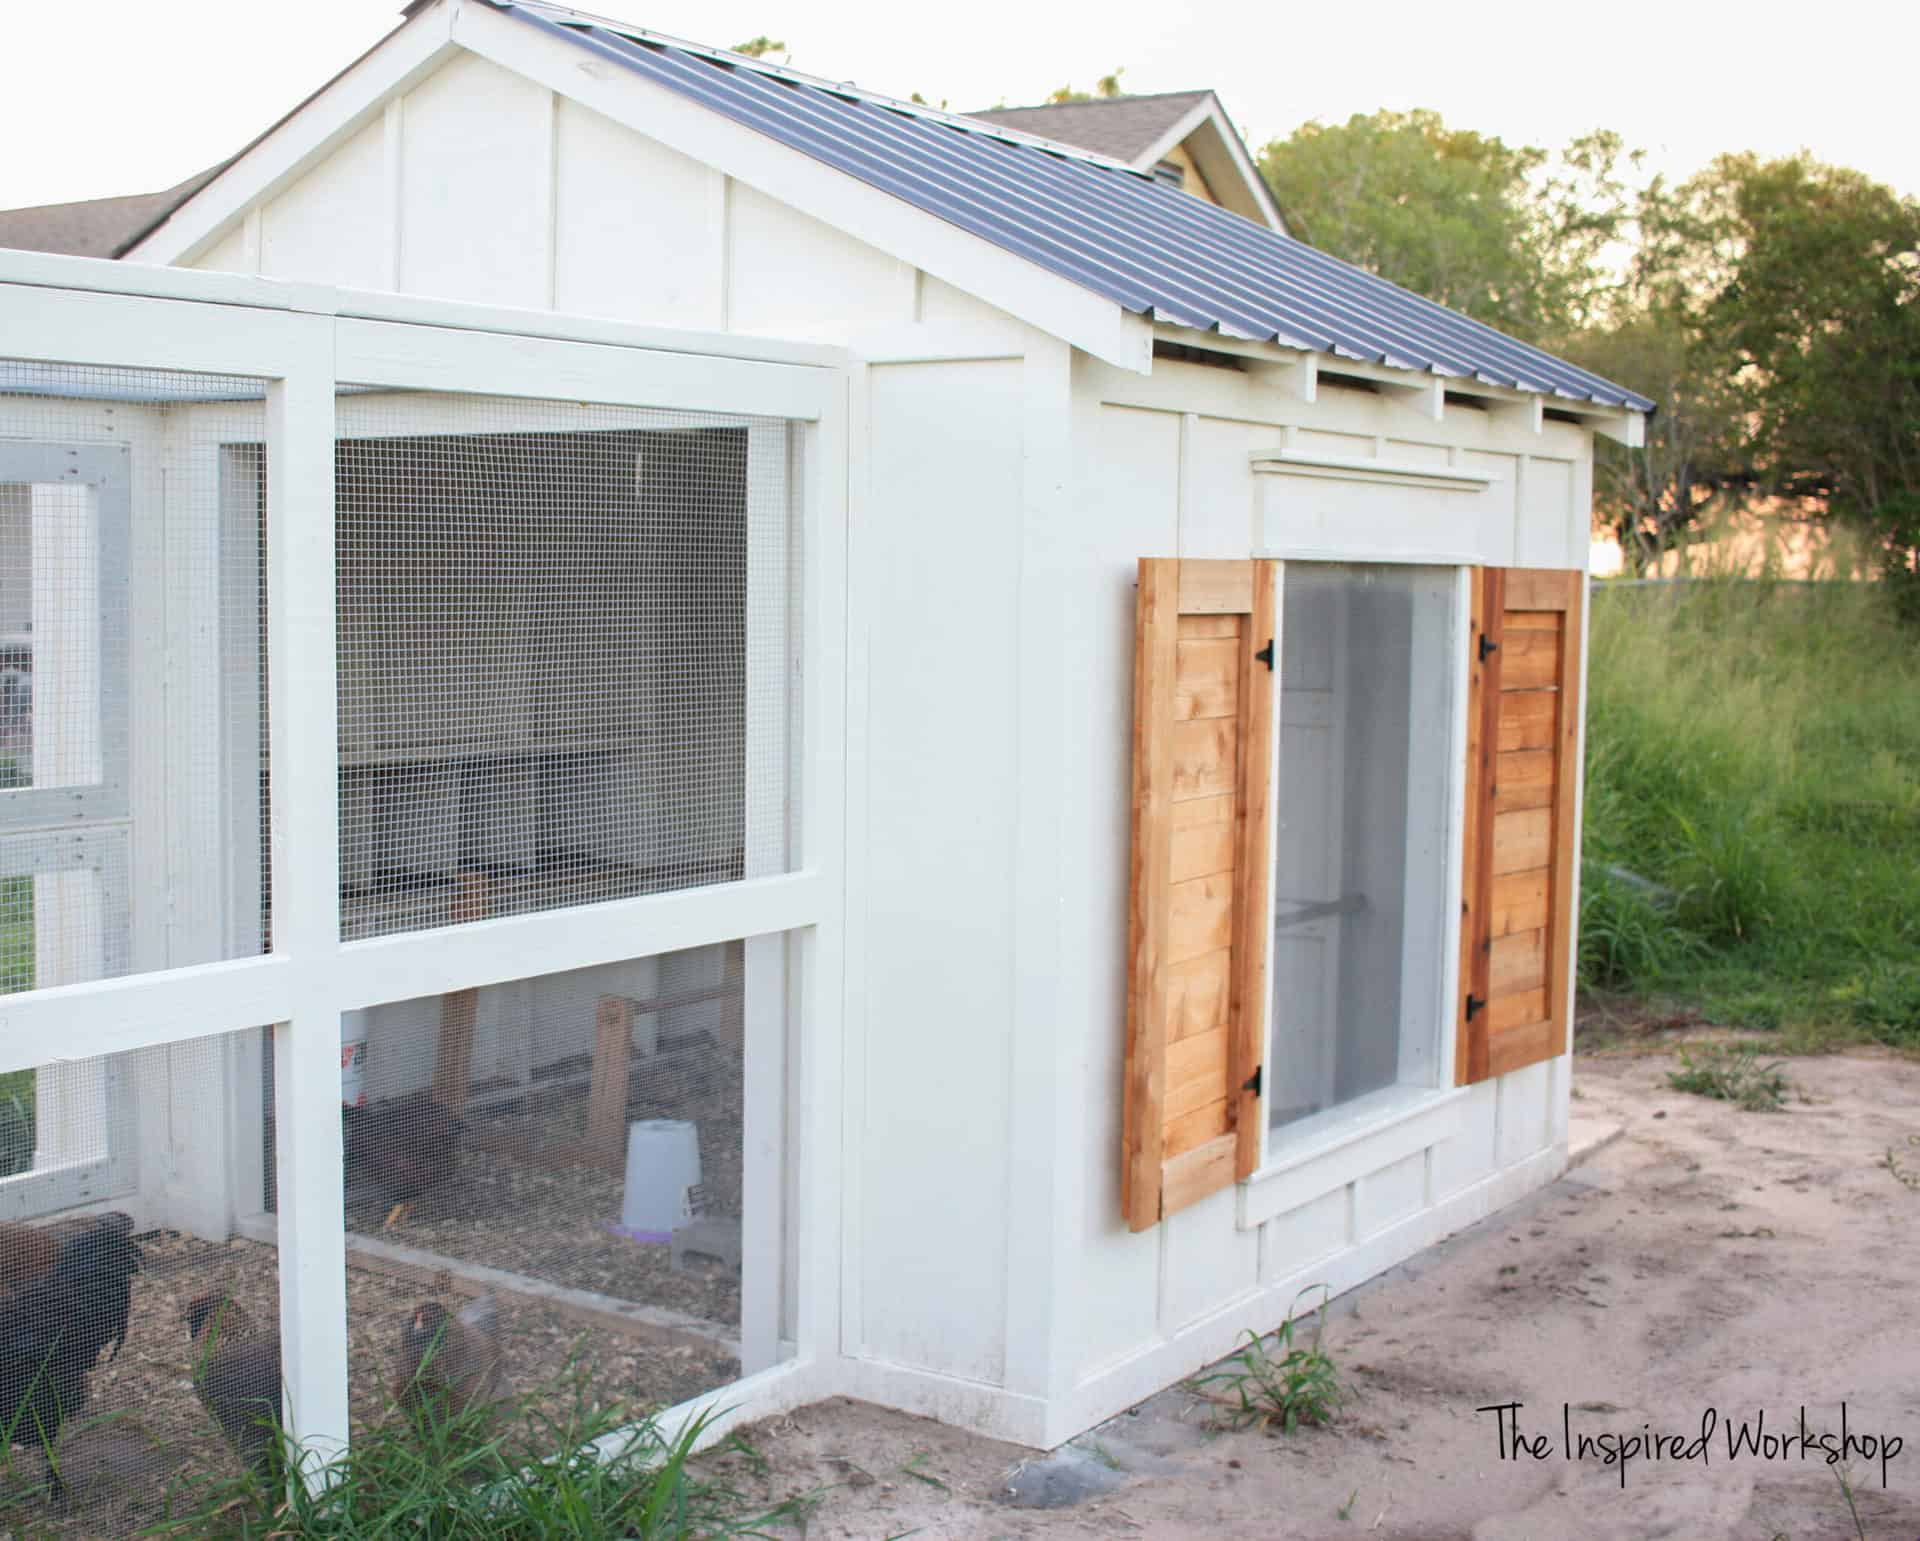 Plans for Chicken Coop